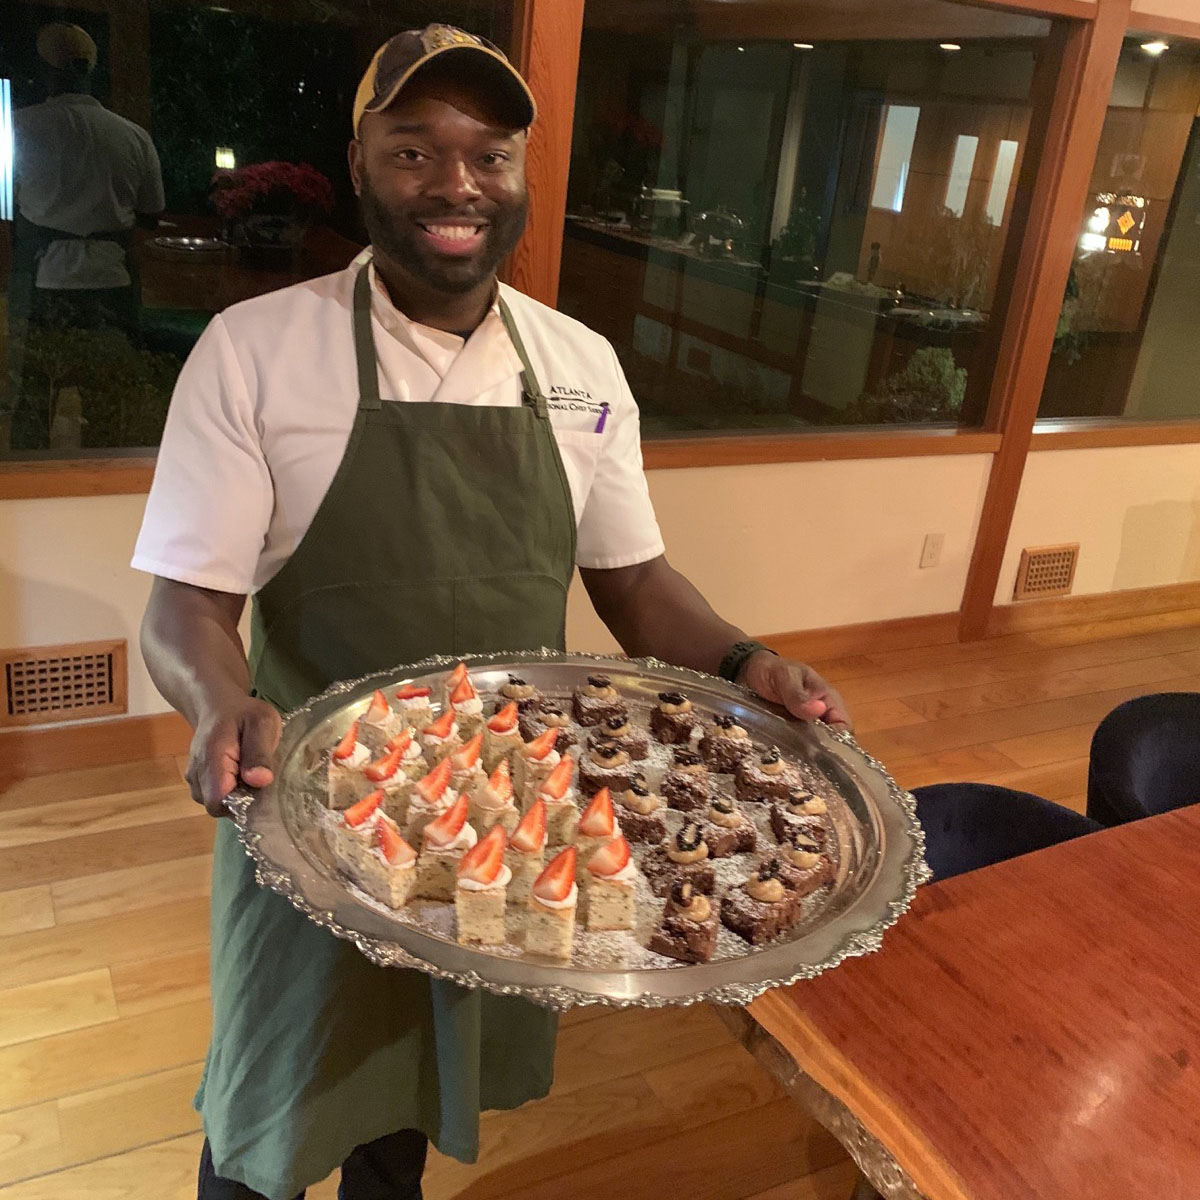 Executive personal chef Tai holding a platter of reception style desserts consisting of strawberry shortcake and fudge brownie bites